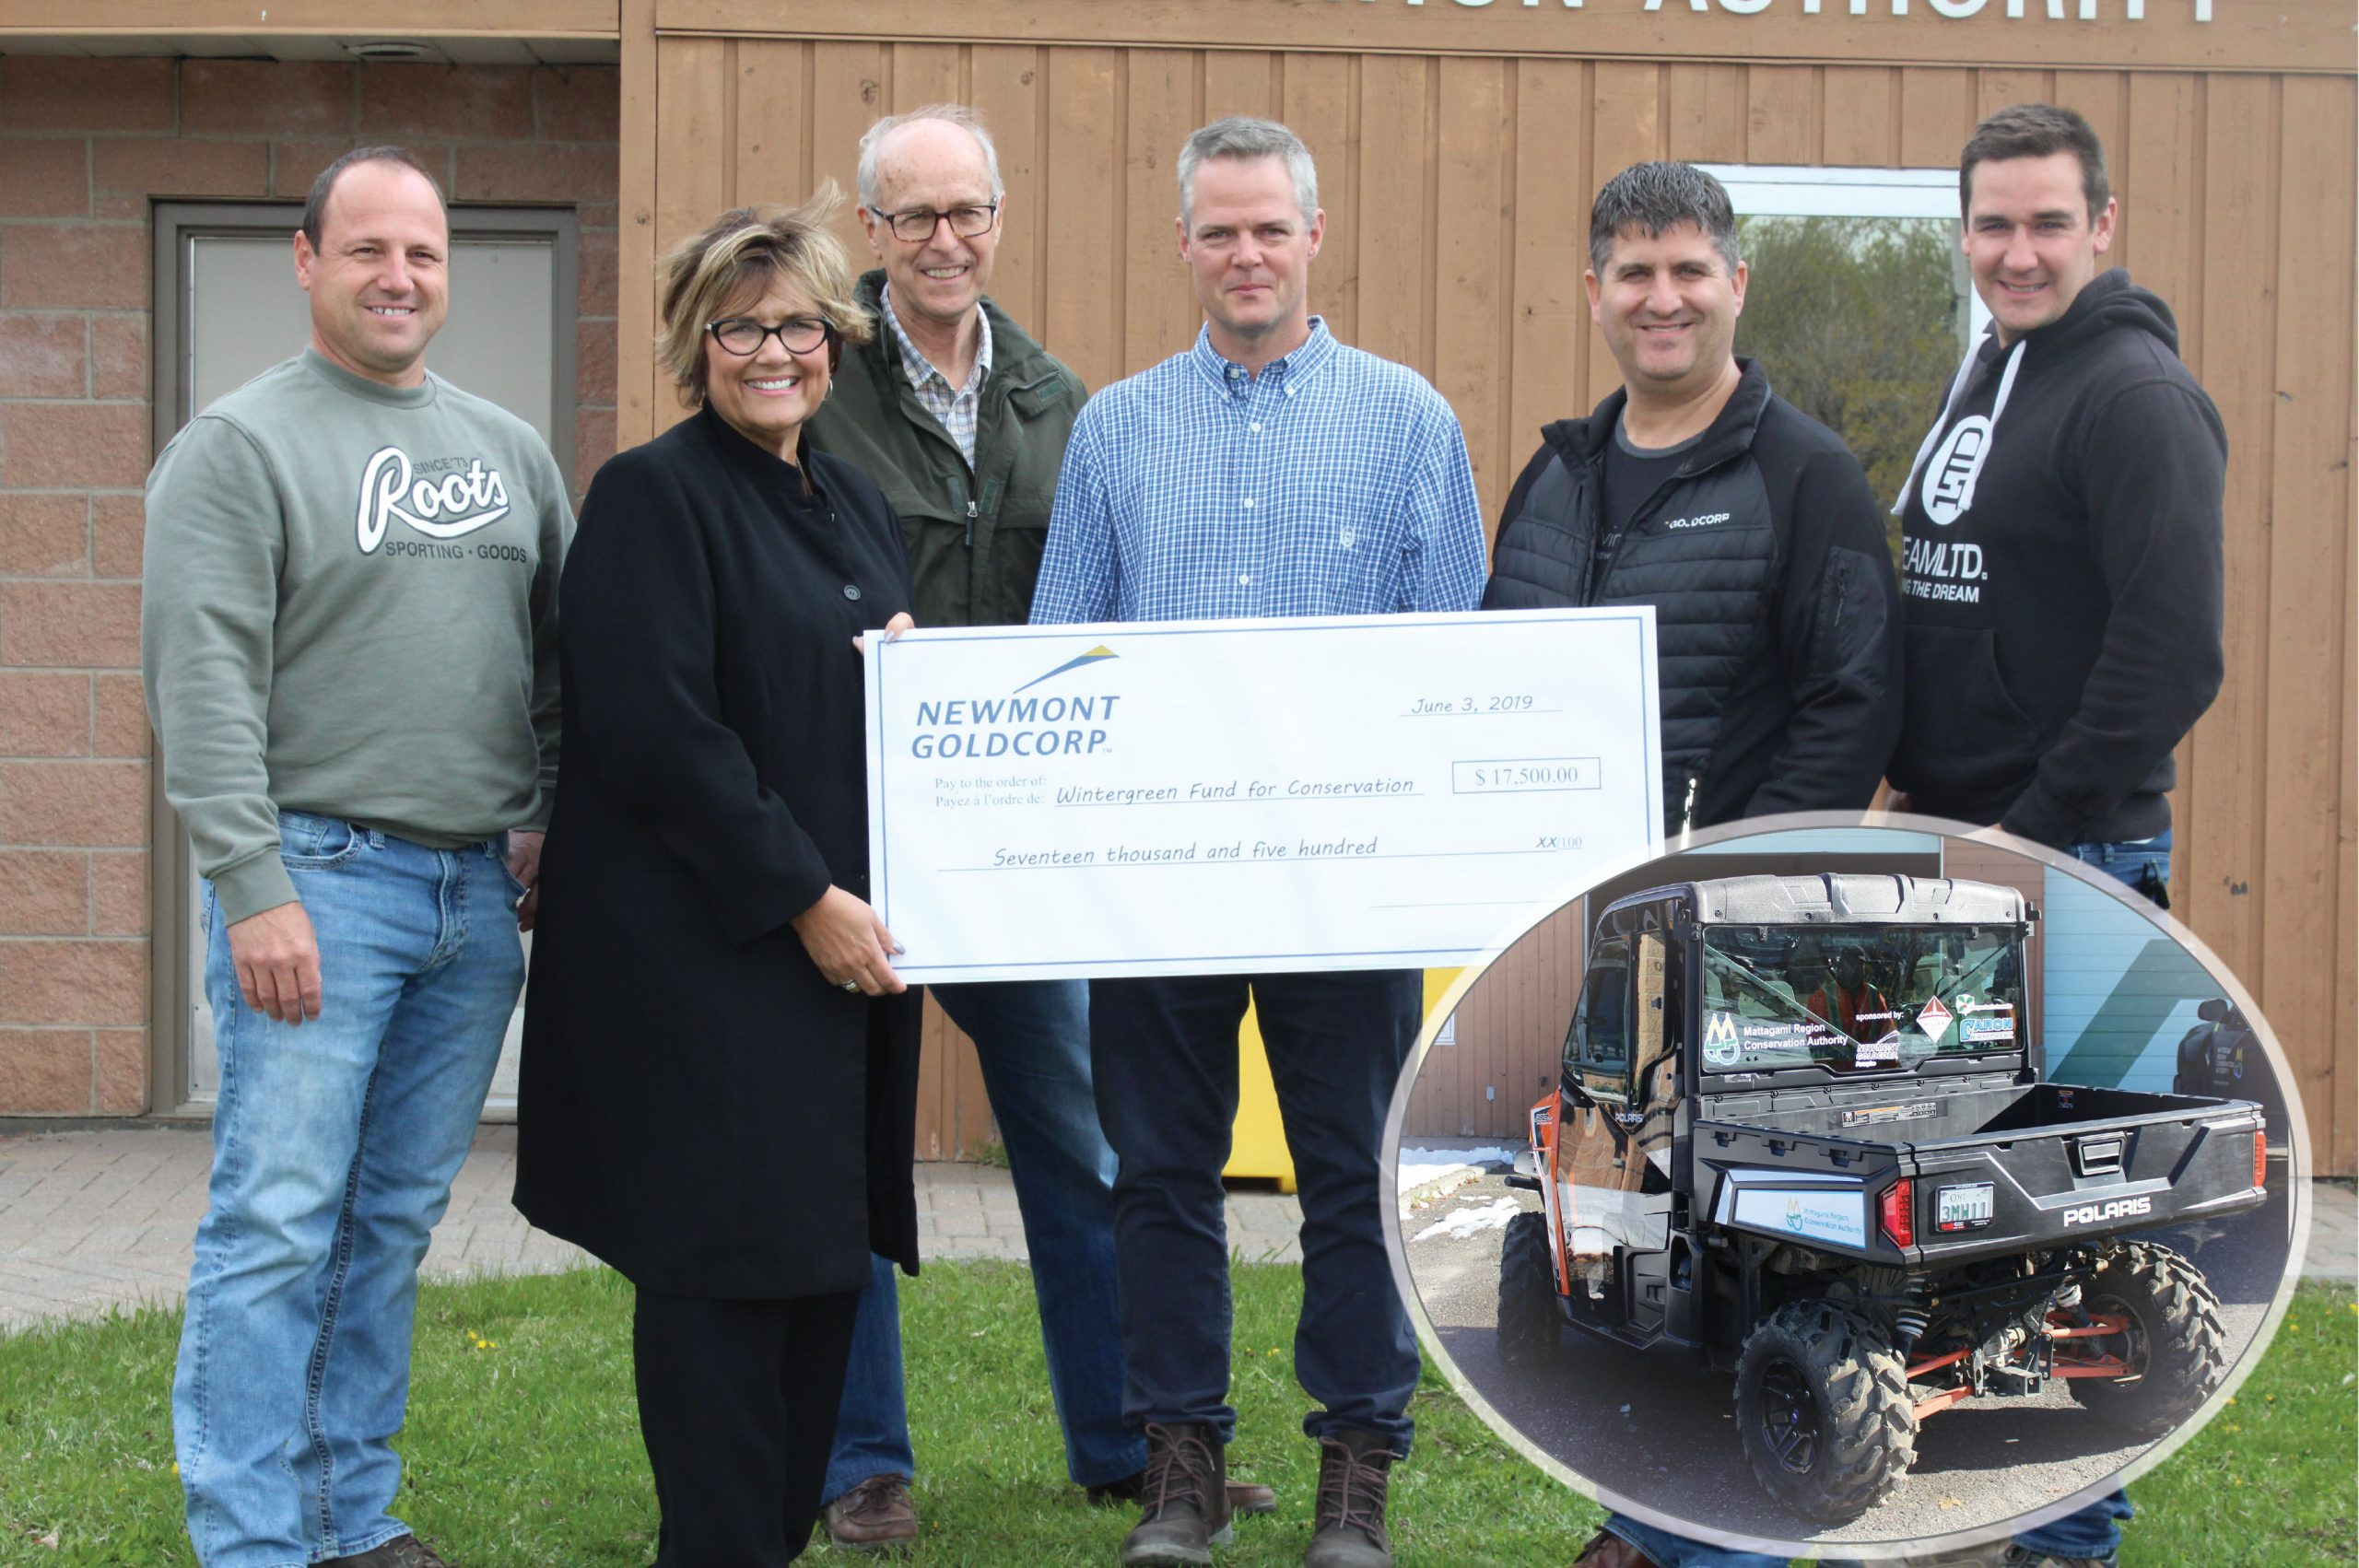 Donation presentation from Caron Equipment, Newmont Goldcorp, Miller Paving and Wintergreen